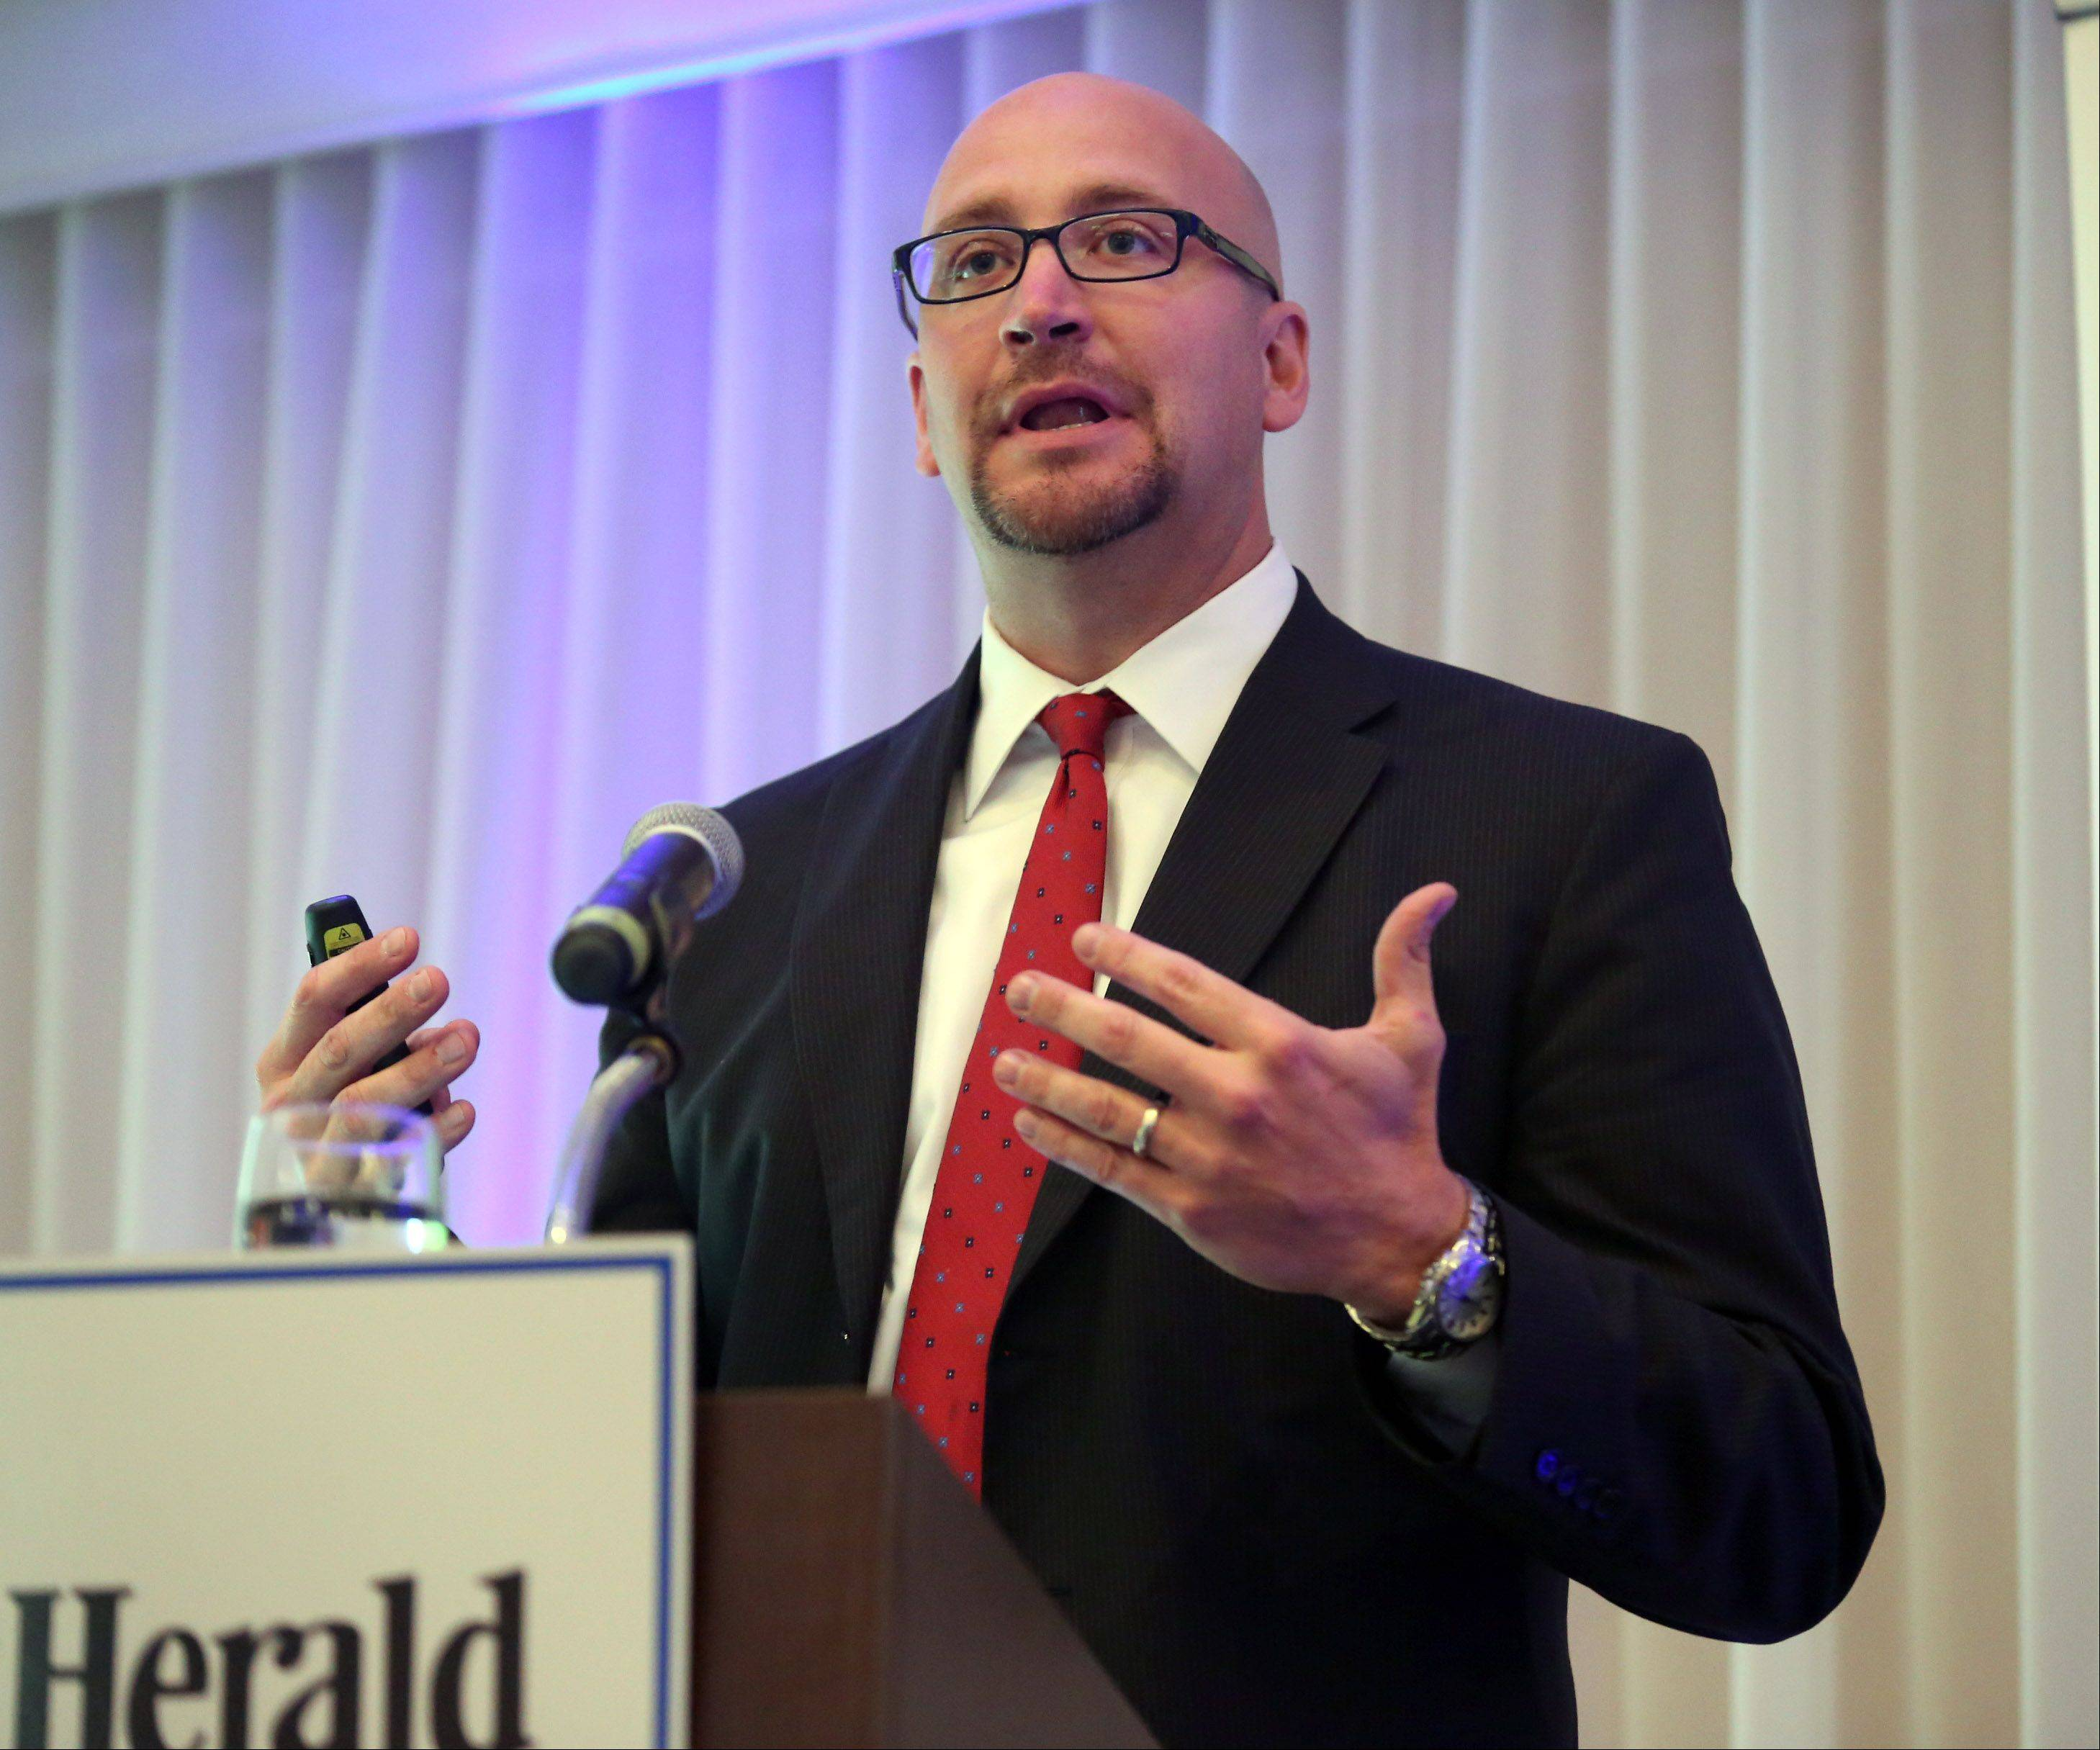 Michael Hartke, chief operating officer of Northwest Community Hospital, was part of a panel on the Affordable Care Act during a program Wednesday hosted by the Daily Herald Media Group at Chandler's Chop House in Schaumburg.